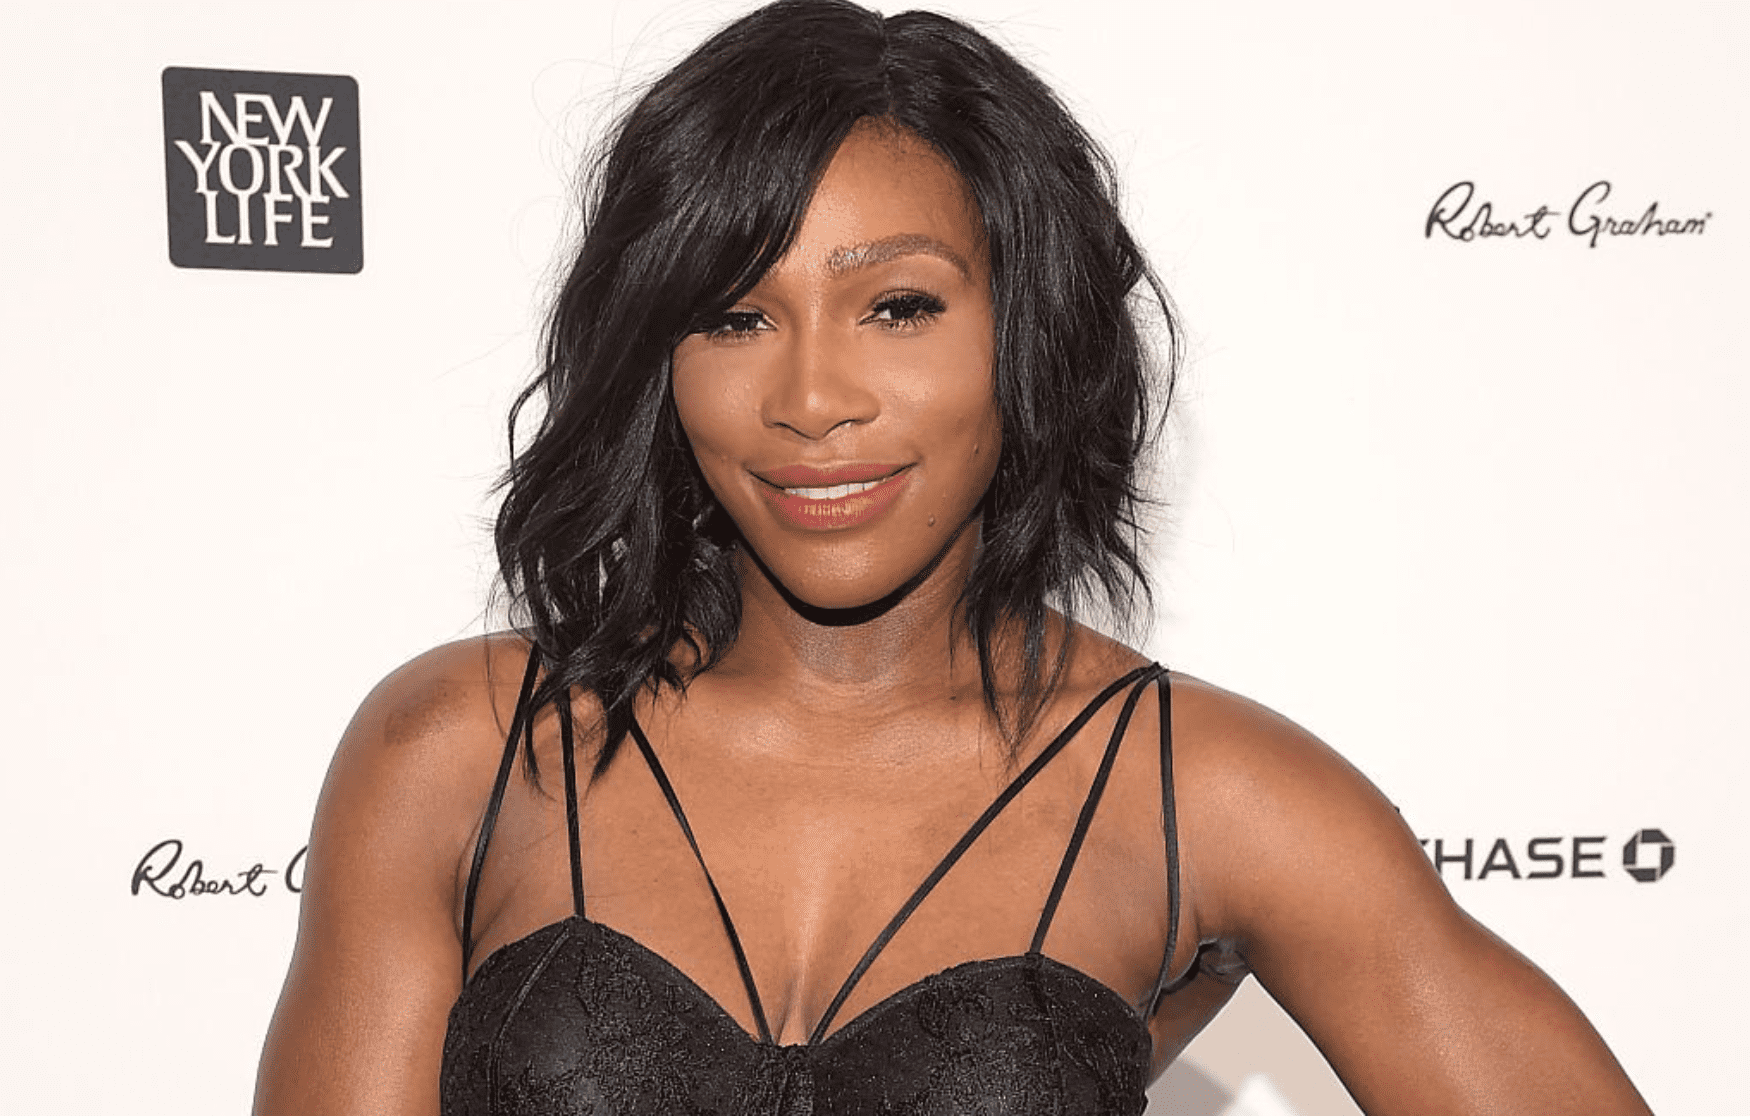 Serena Williams at the 2015 Sports Illustrated Sportsperson of the Year Ceremony in New York City on December 15, 2015.   Source: Getty Images